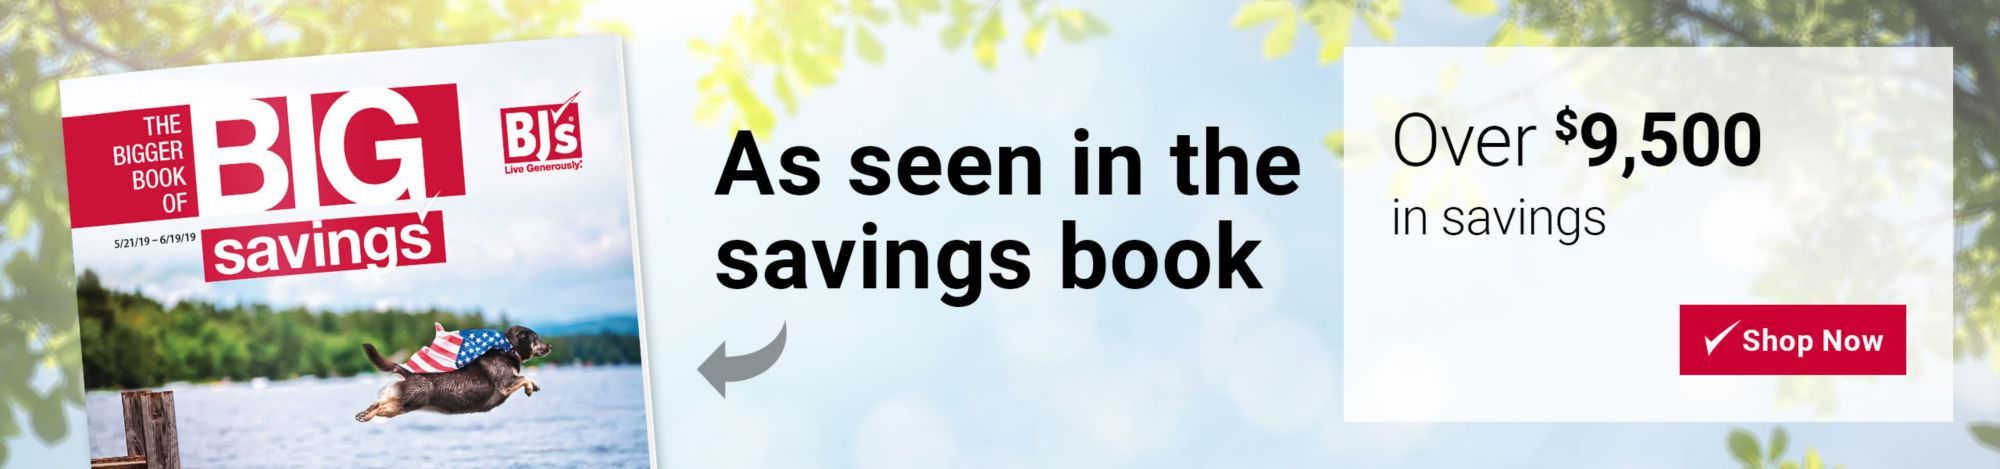 Over $9,500 in savings, as seen in the savings book. Click here to shop now.